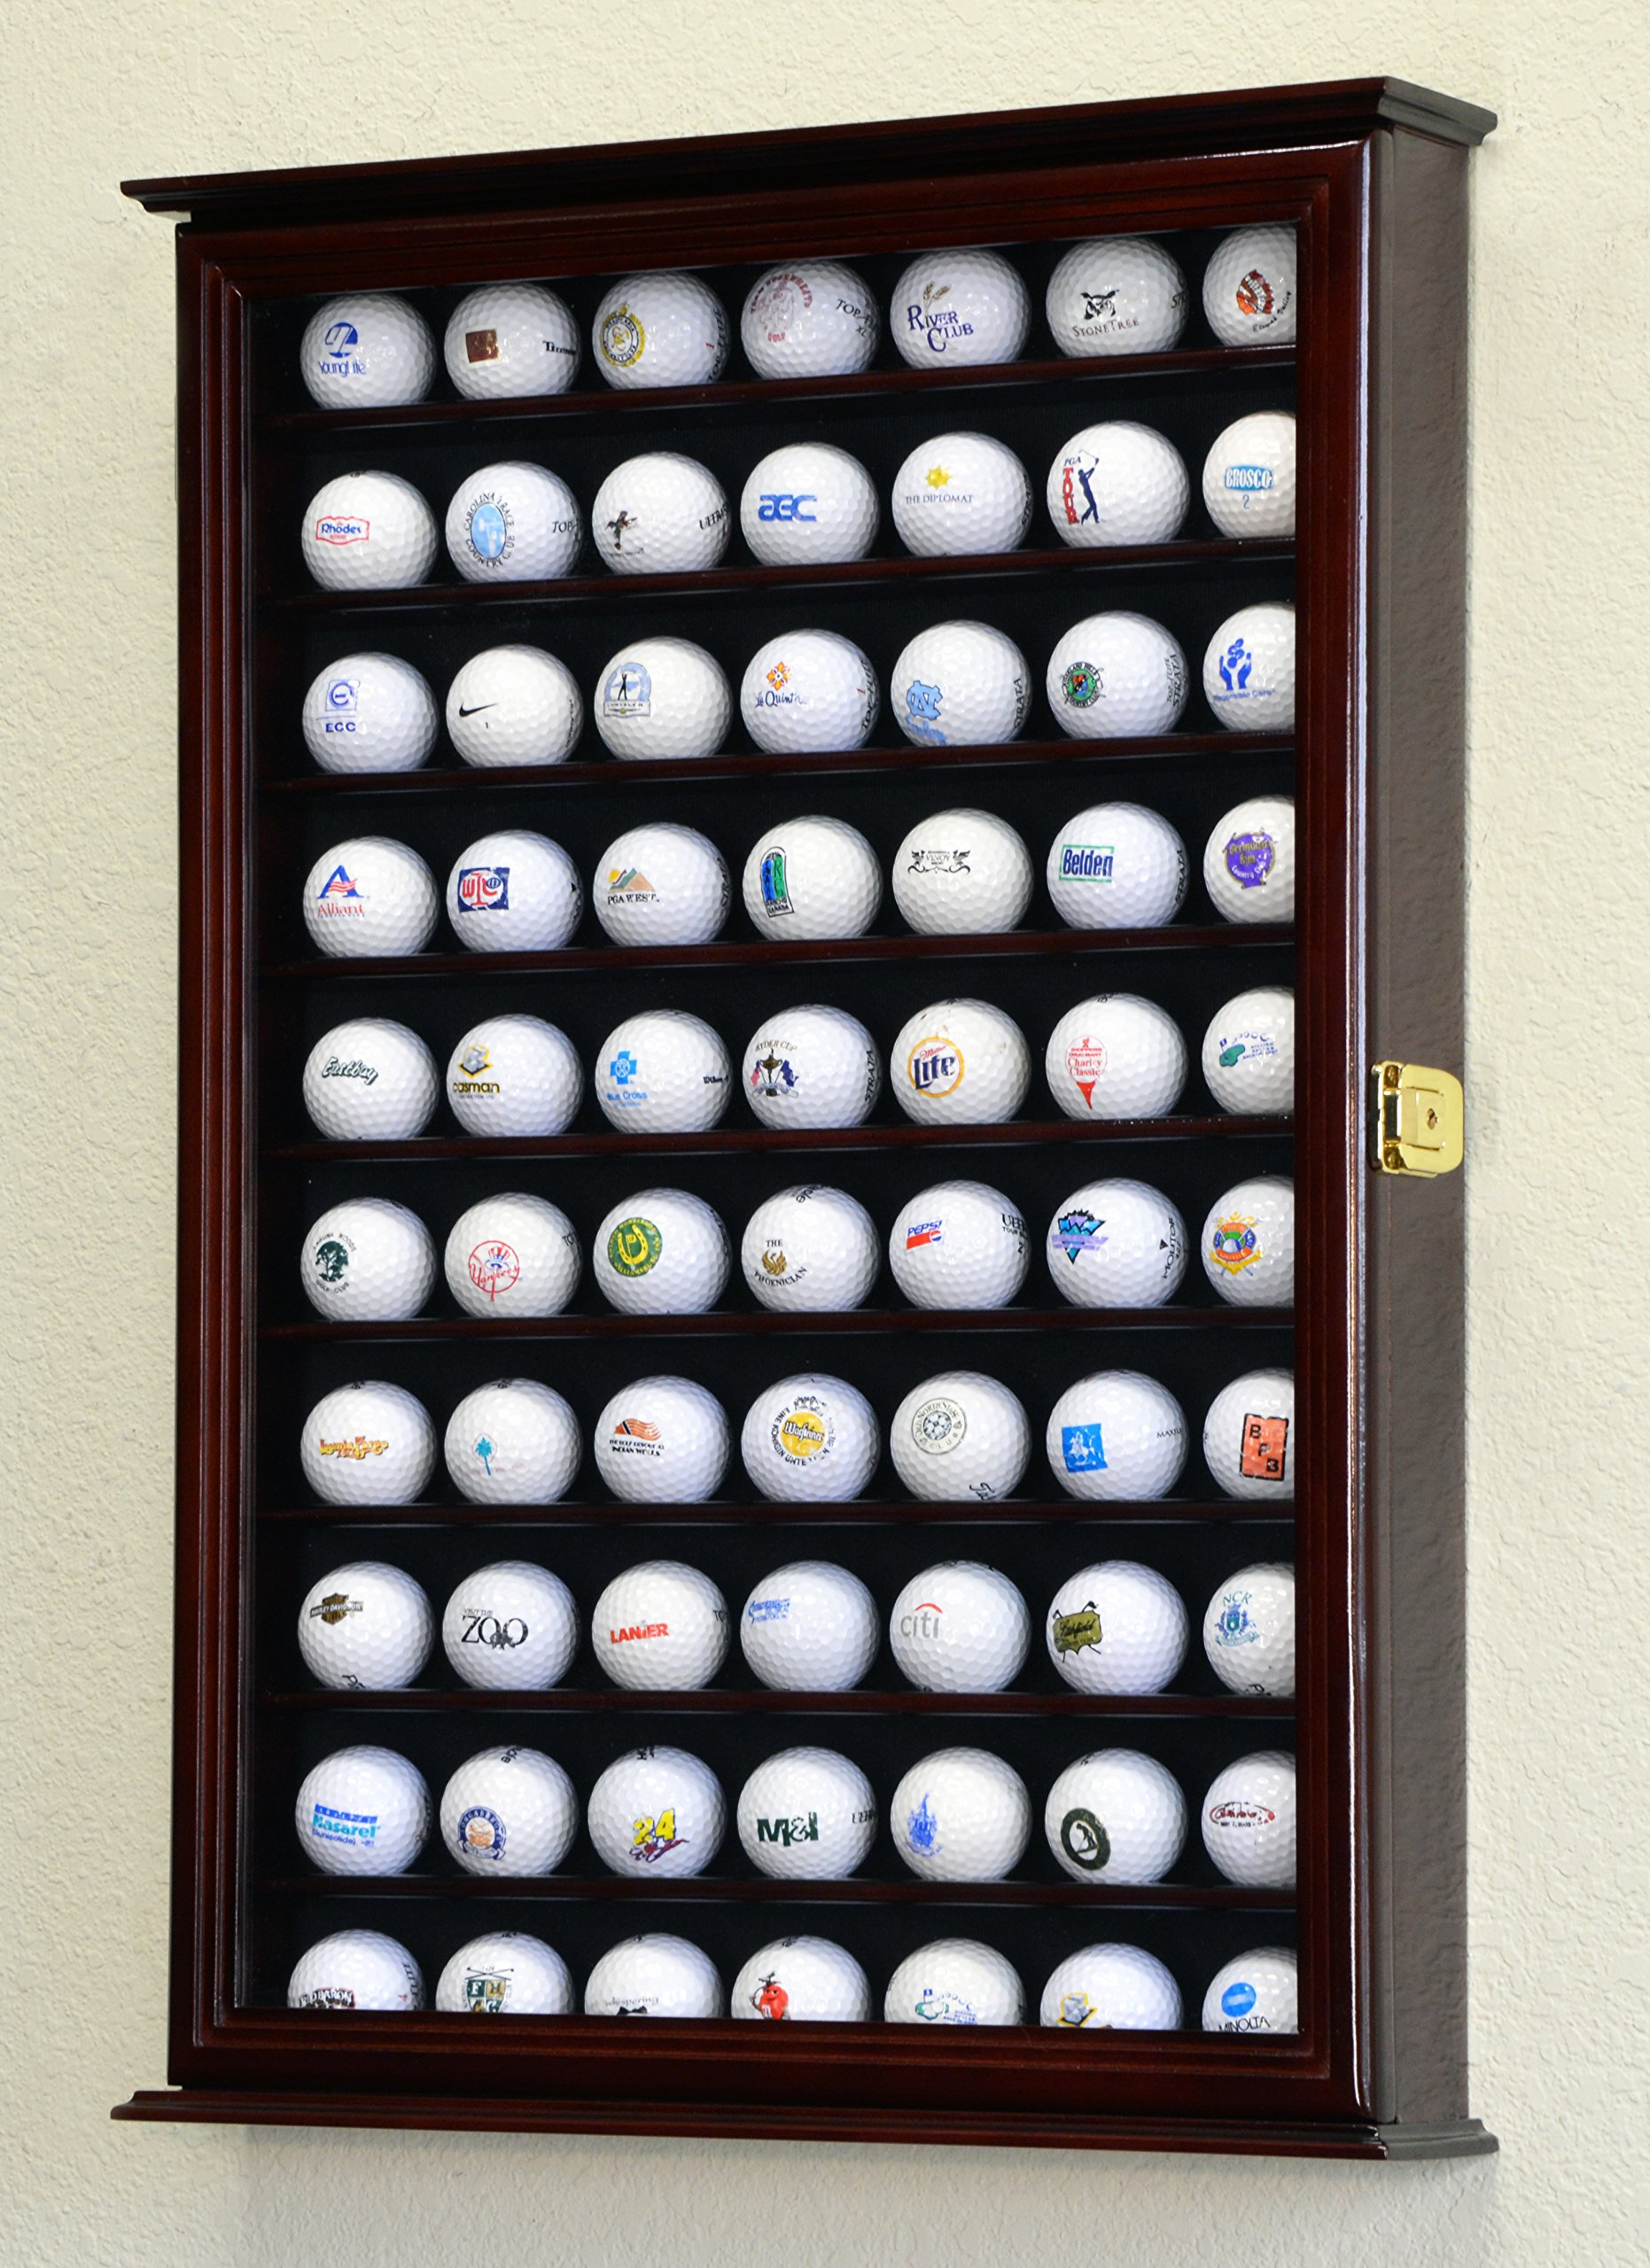 70 Golf Ball Display Case Cabinet Wall Rack Holder w/98% UV Protection Lockable -Cherry